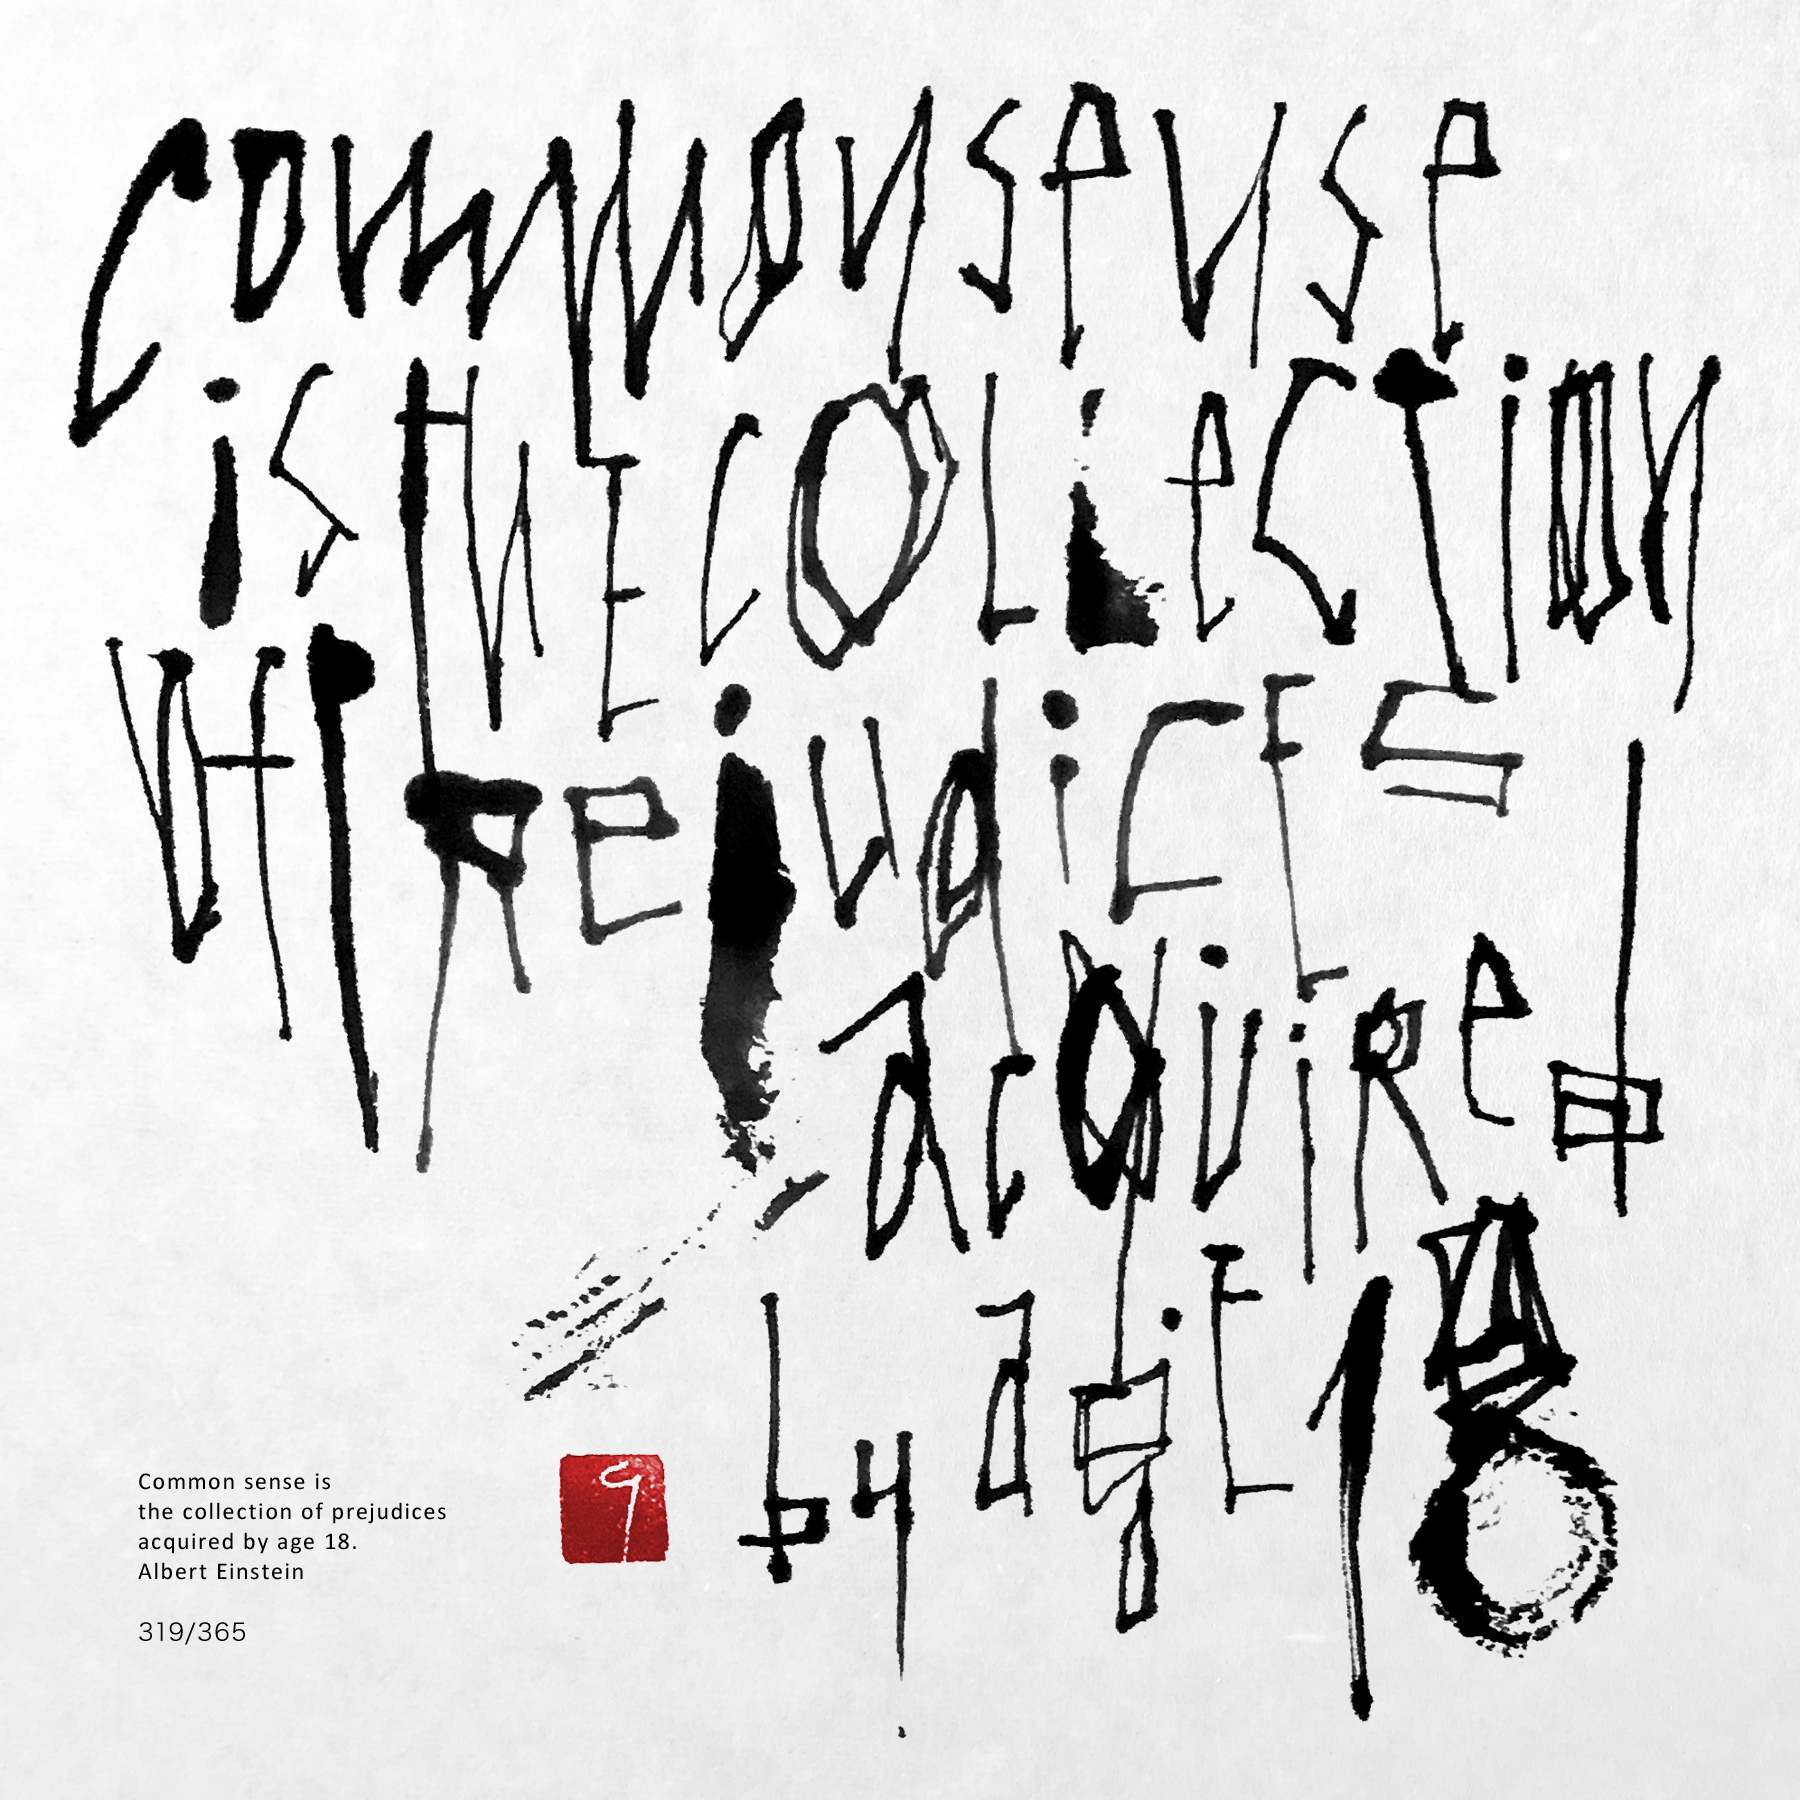 Common sense is | Albert Einstein 書道作品 japaneseart japanese calligraphy 書家 田川悟郎 Goroh Tagawa